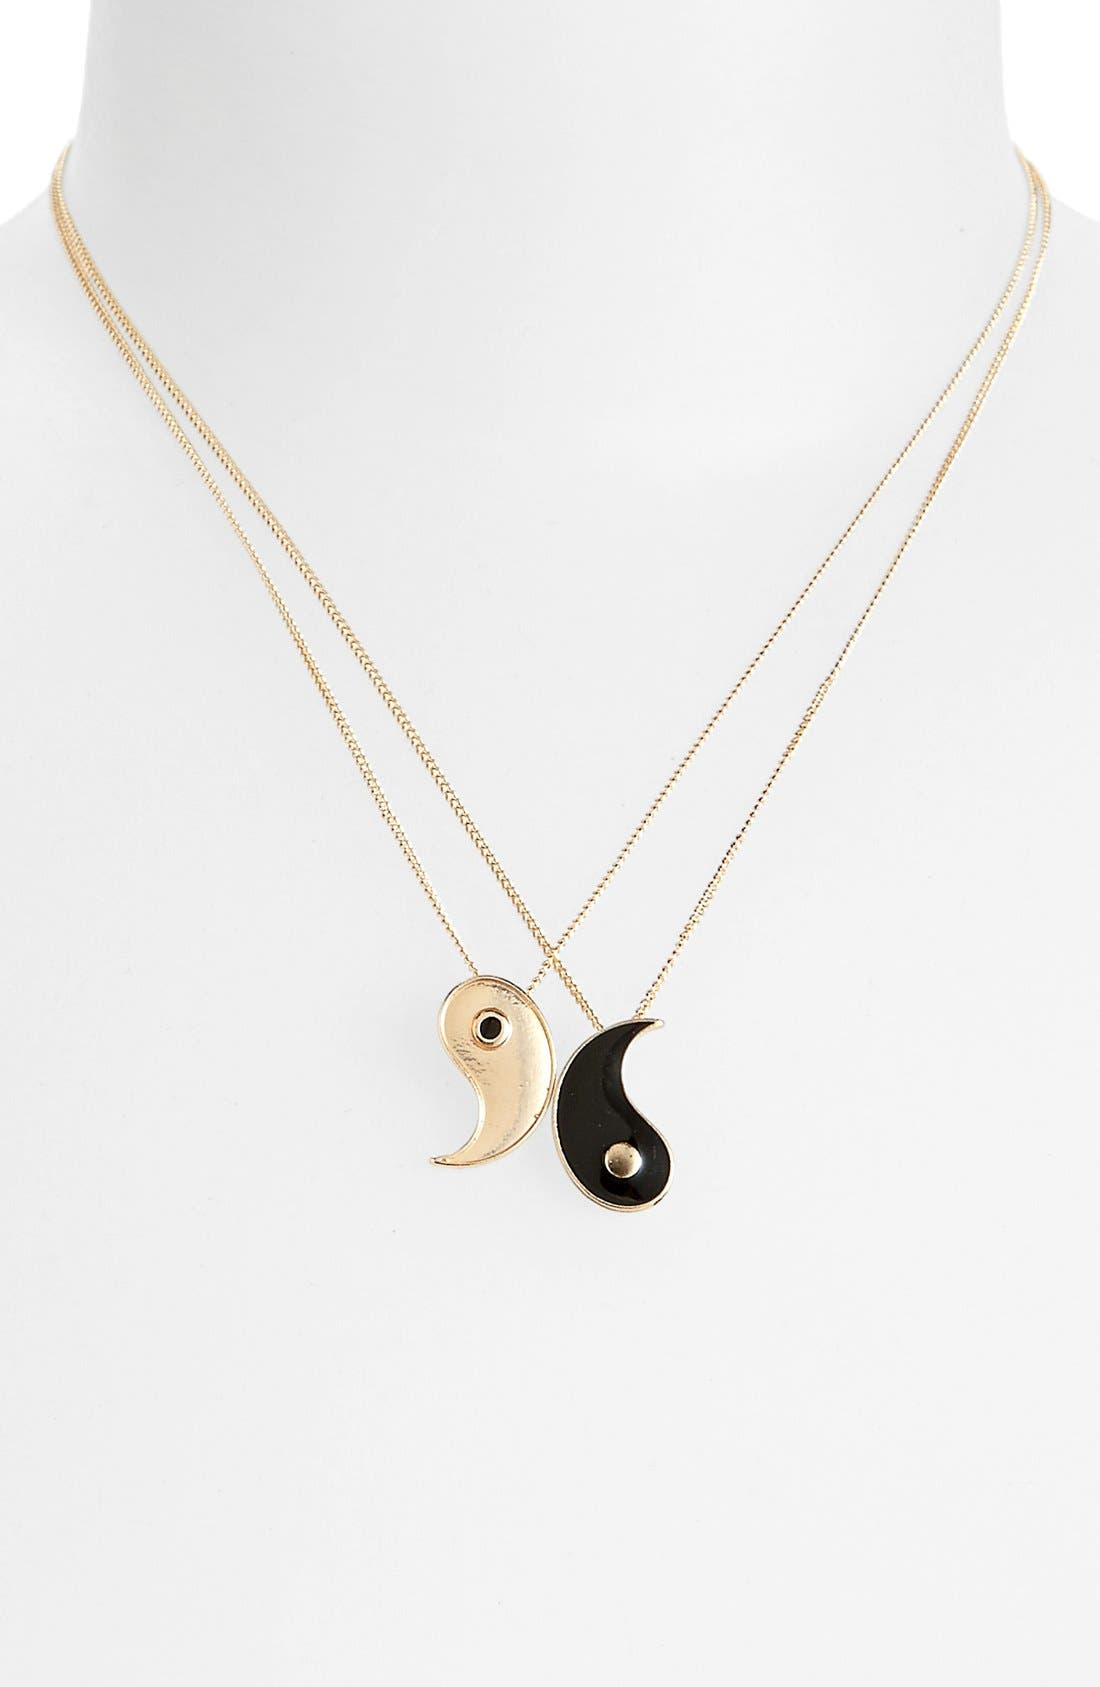 Main Image - Topshop Yin Yang Necklaces (Set of 2)